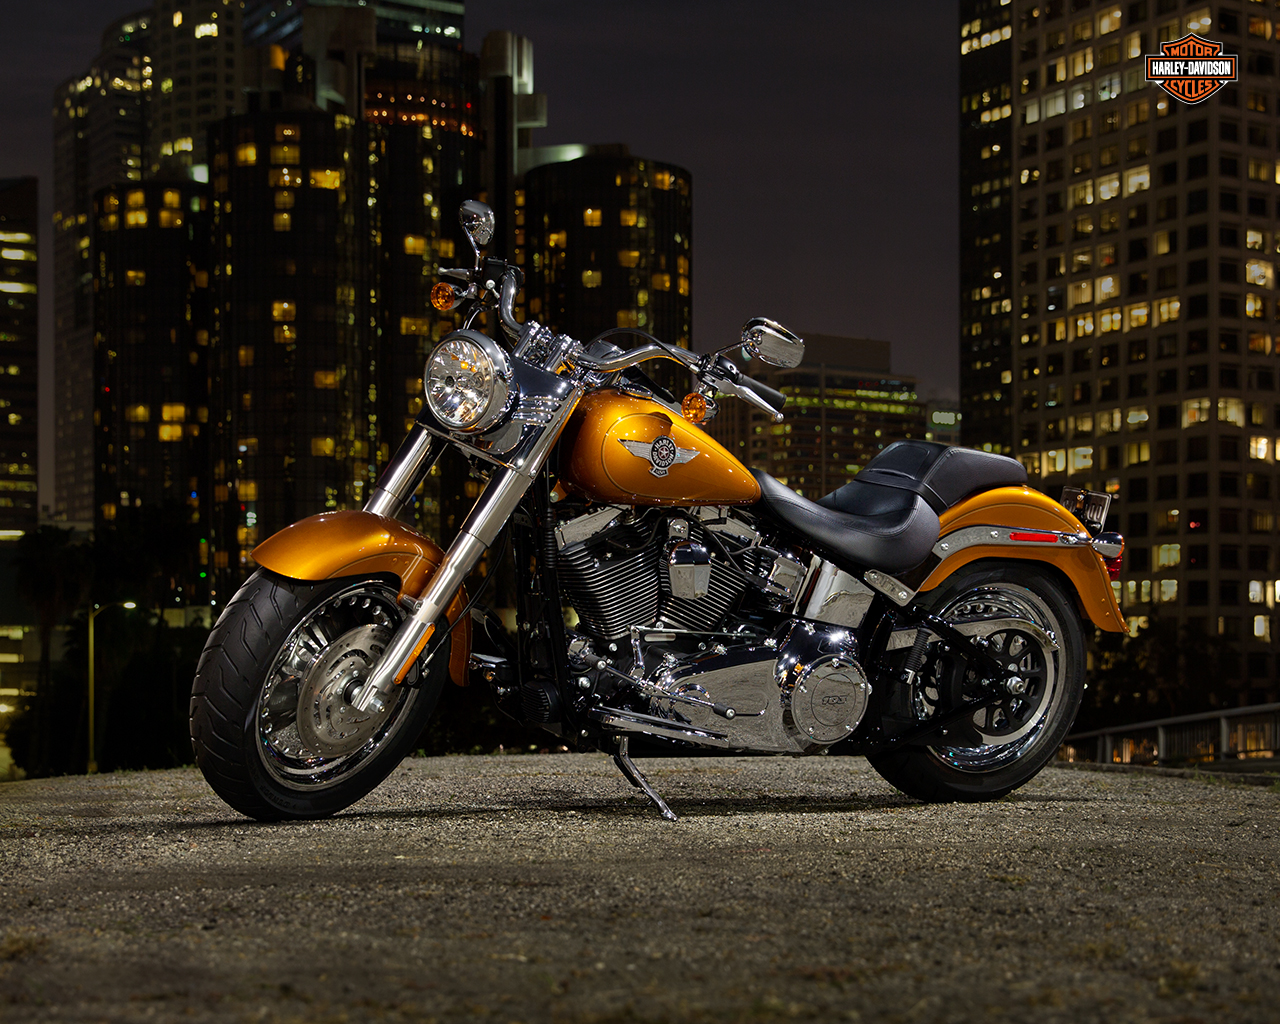 harley-davidson wallpaper (harley-davidson fat-boy)